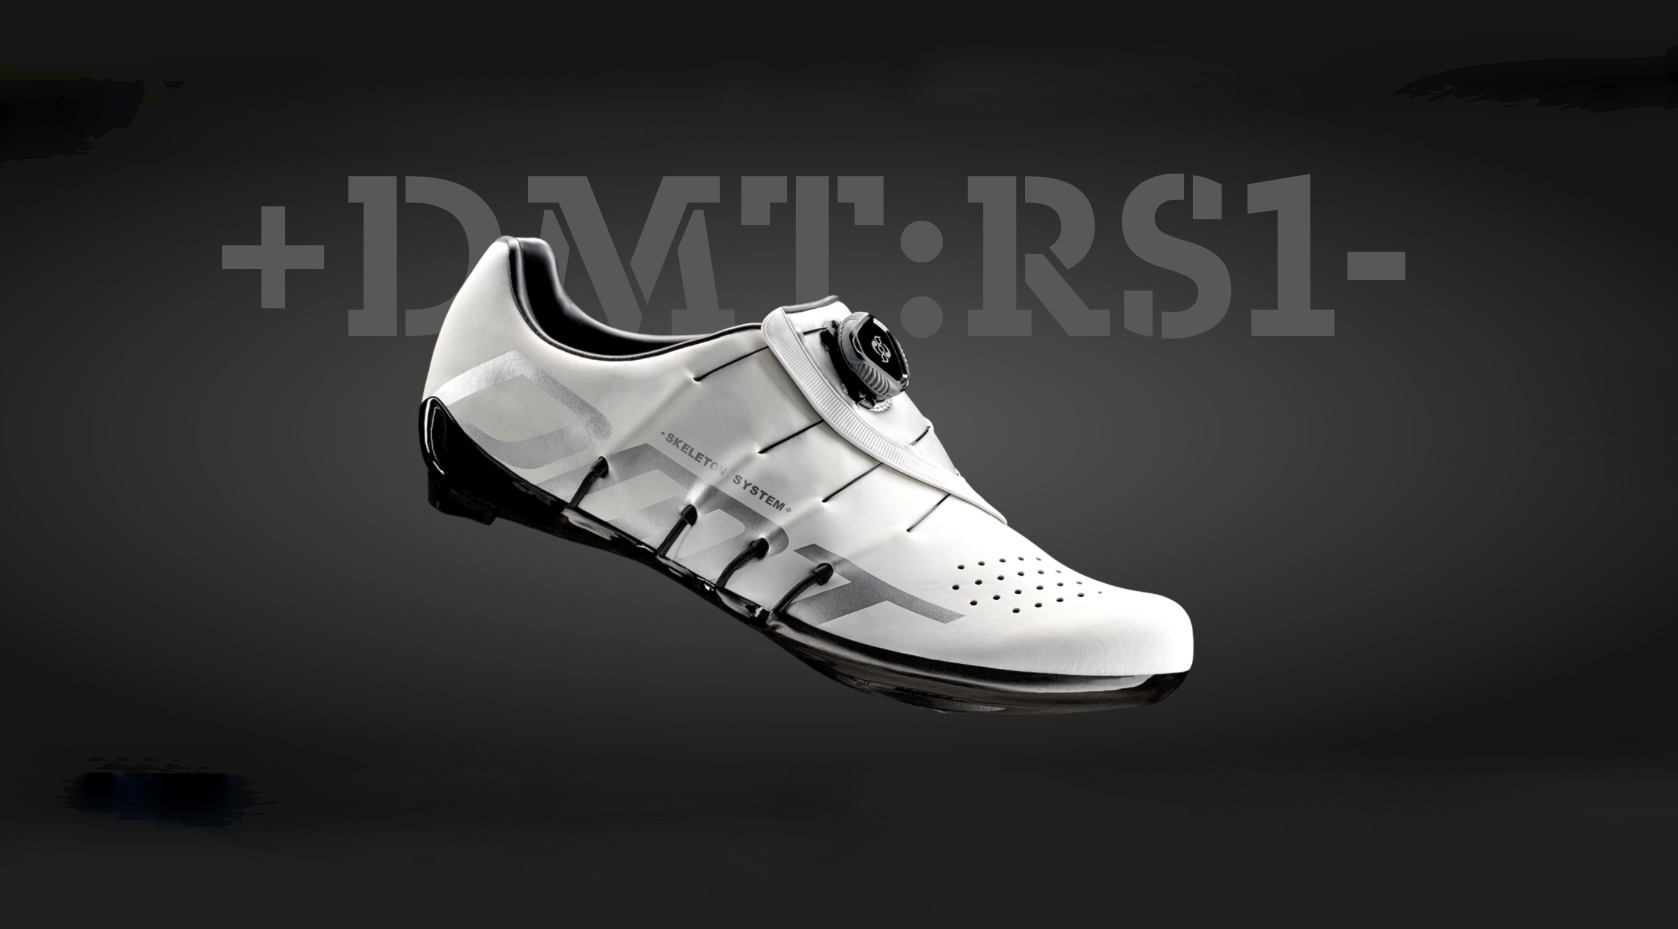 CapoVelo com | DMT RS1 Road Shoe Reviewed